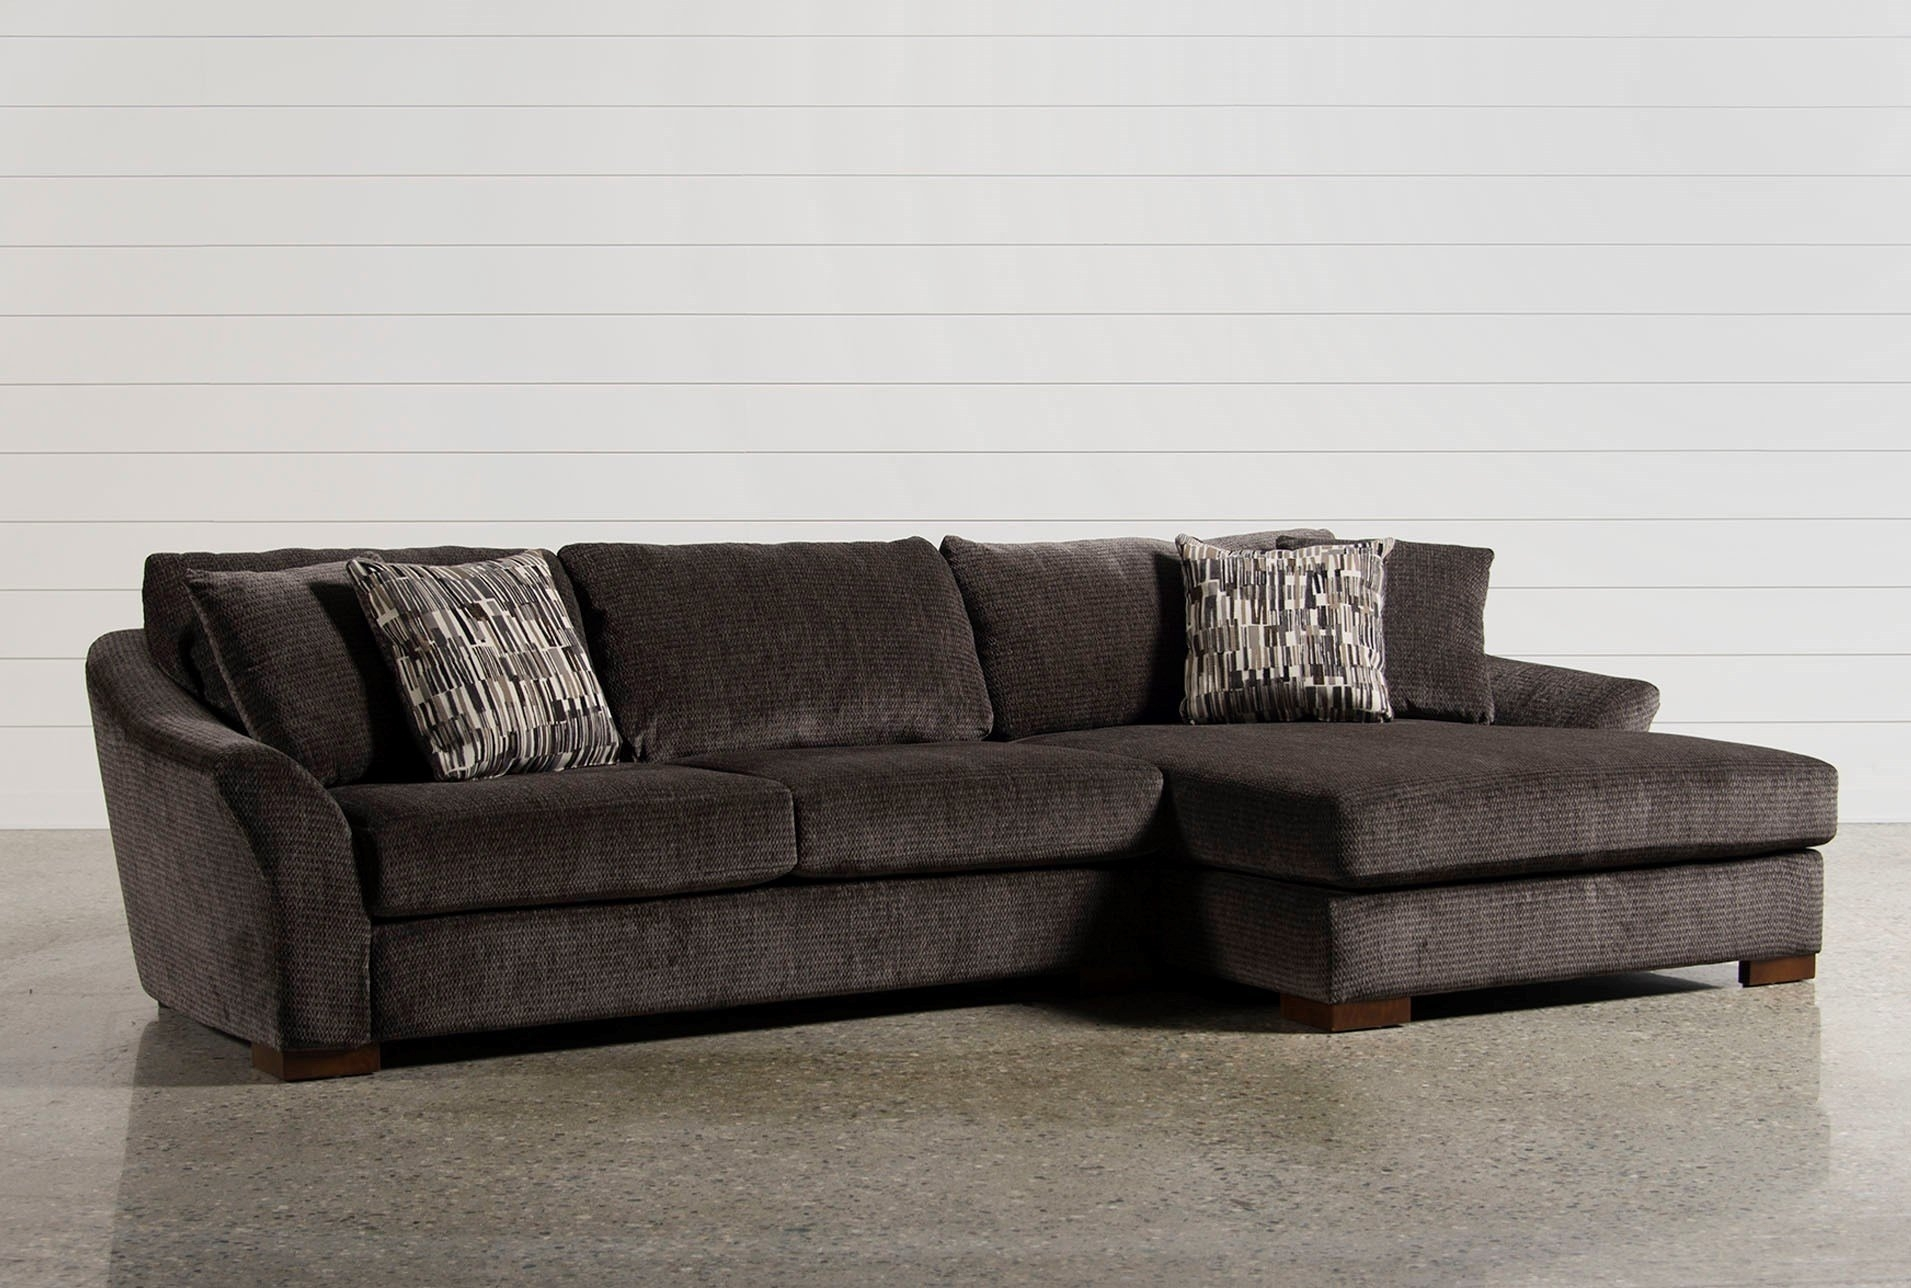 Corbin 3 Piece Sectional W Raf Chaise Ideas Of Living Spaces intended for Aspen 2 Piece Sleeper Sectionals With Laf Chaise (Image 11 of 30)